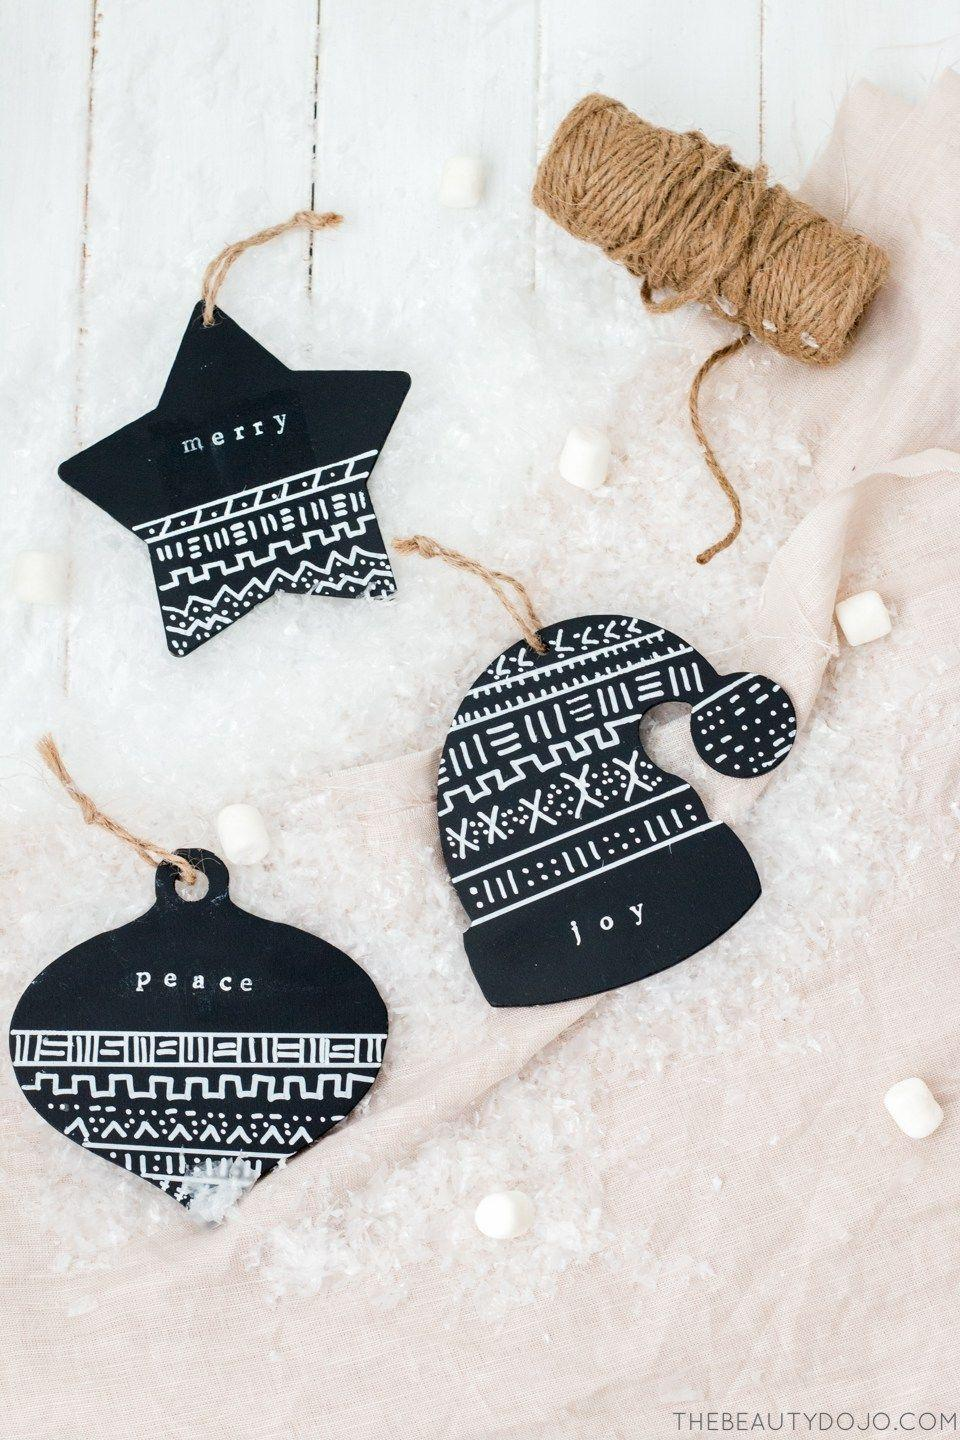 "<p>Black ornaments get a quick, easy update with a bit of white paint and some alphabet stamps. You can write just about whatever you want on these beauties!</p><p><strong>Get the tutorial at <a href=""http://www.thebeautydojo.com/mud-cloth-ornaments/"" rel=""nofollow noopener"" target=""_blank"" data-ylk=""slk:The Beauty Dojo"" class=""link rapid-noclick-resp"">The Beauty Dojo</a>.</strong></p><p><a class=""link rapid-noclick-resp"" href=""https://www.amazon.com/Molotow-ONE4ALL-Acrylic-Marker-127-102/dp/B0044D5NPQ?tag=syn-yahoo-20&ascsubtag=%5Bartid%7C10050.g.1070%5Bsrc%7Cyahoo-us"" rel=""nofollow noopener"" target=""_blank"" data-ylk=""slk:SHOP WHITE PAINT PENS""><strong>SHOP WHITE PAINT PENS</strong> </a></p>"